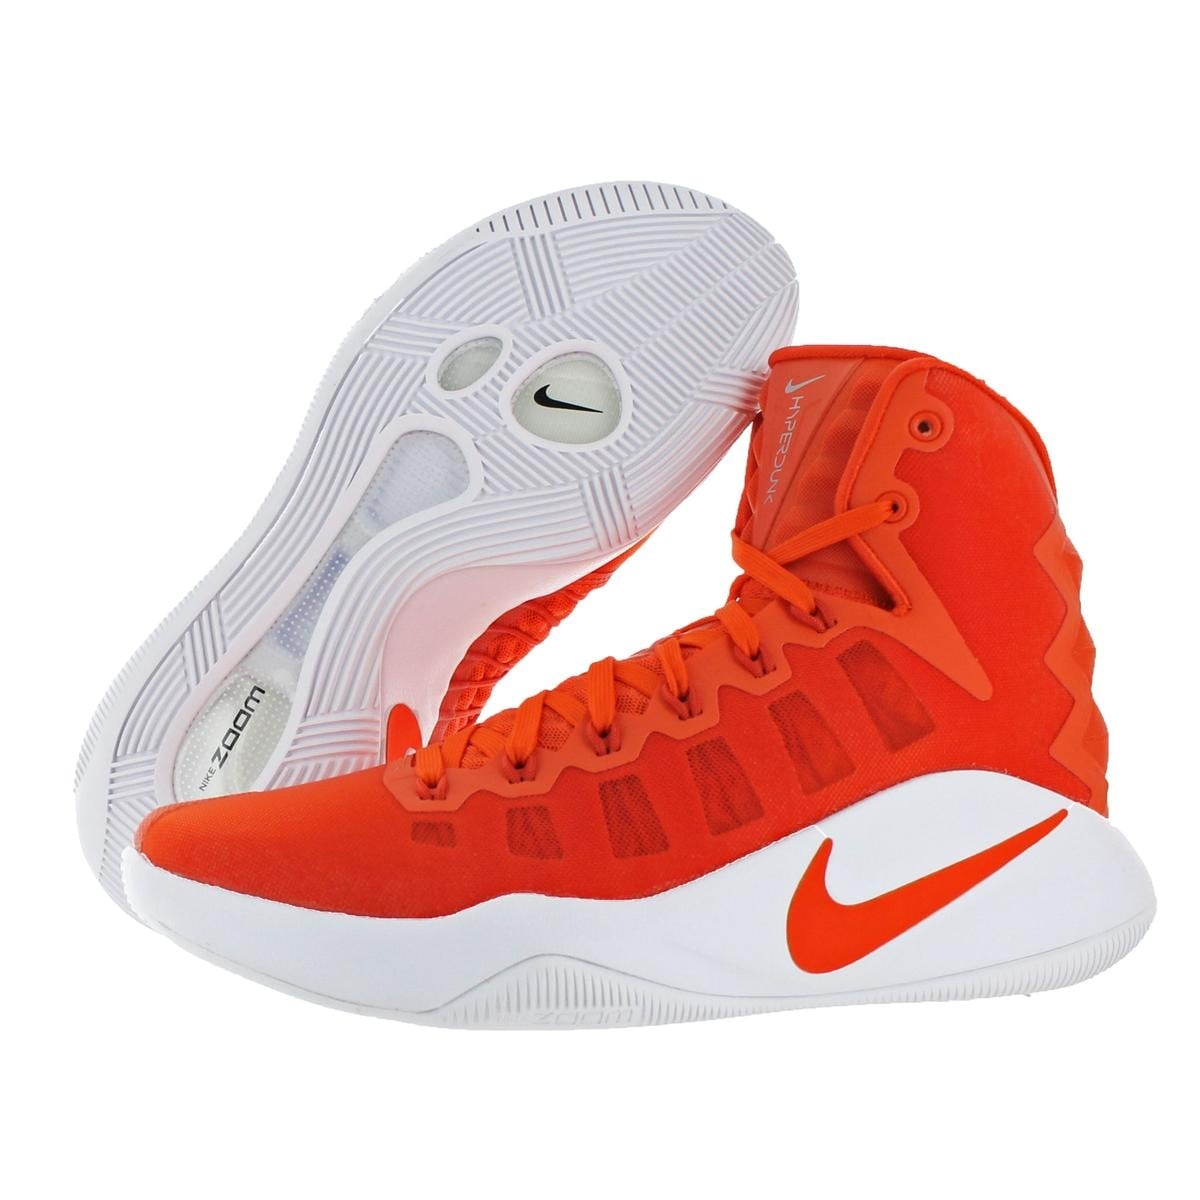 4c8fb44e4fd0 Shop Nike Womens Hyperdunk 2016 TB Basketball Shoes Nike Zoom Mid Top -  Free Shipping On Orders Over  45 - Overstock - 21803225